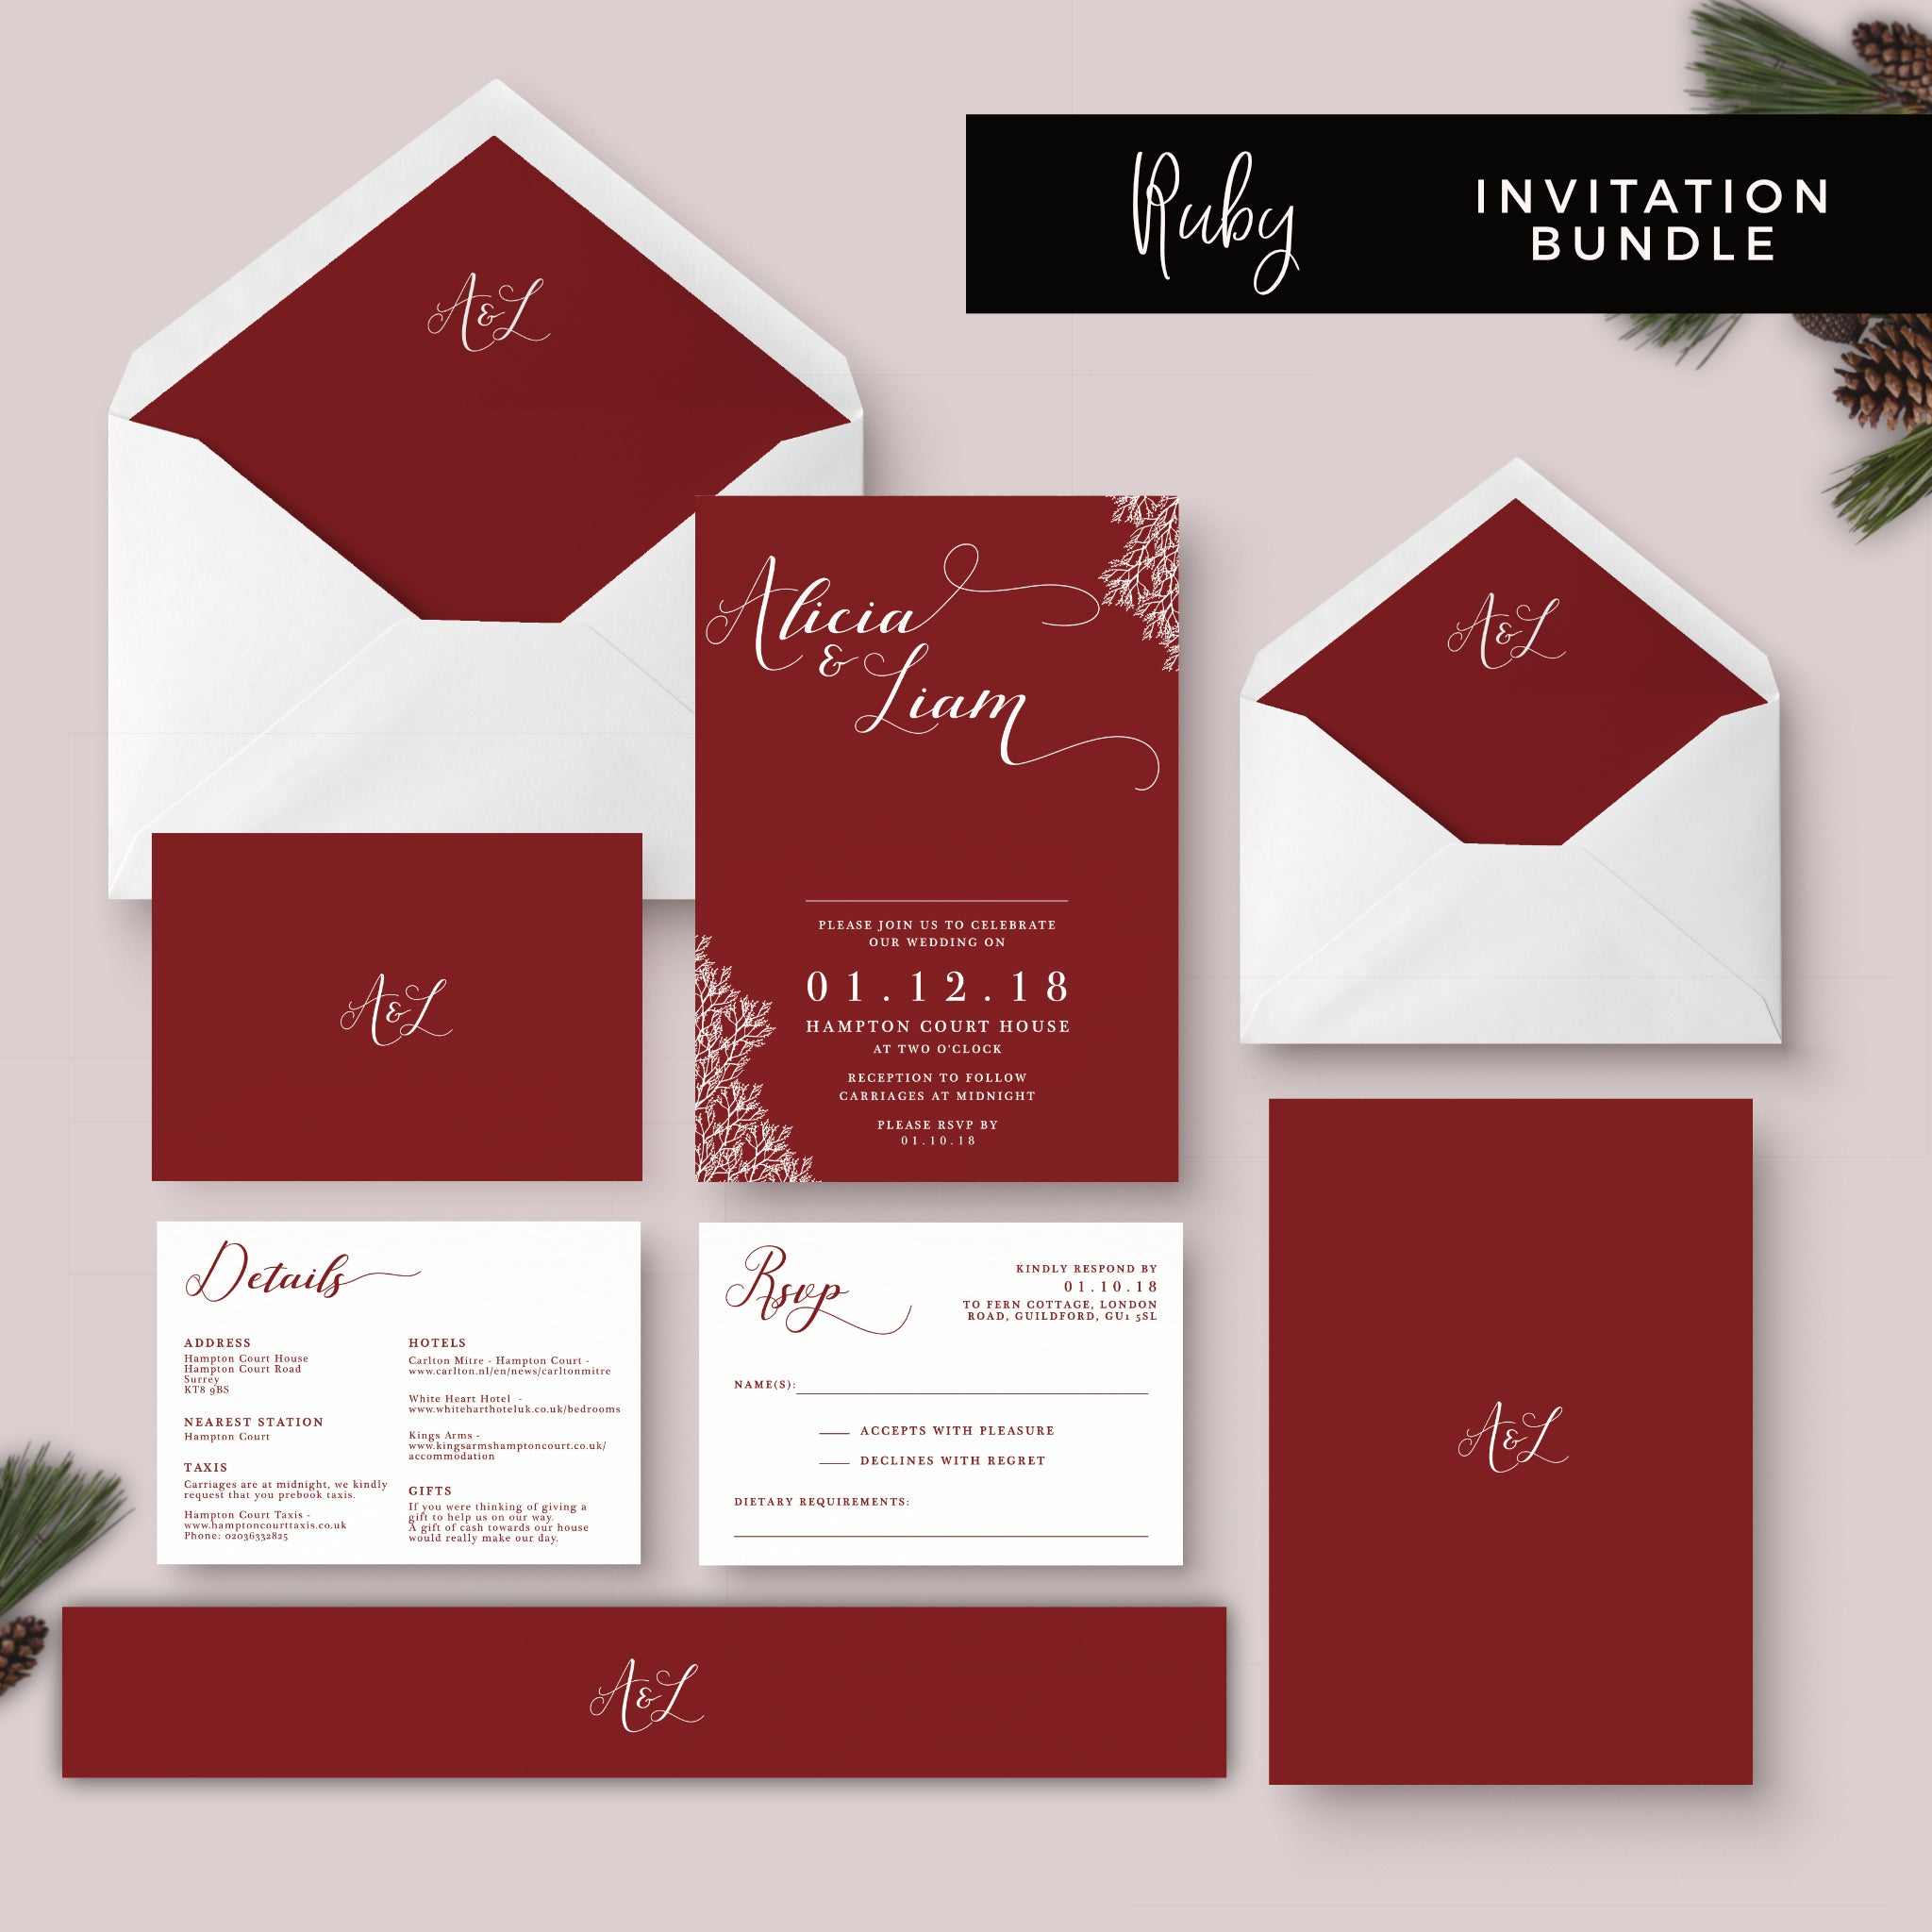 Ruby Personalised Invitation Bundle – The Stationery Garden